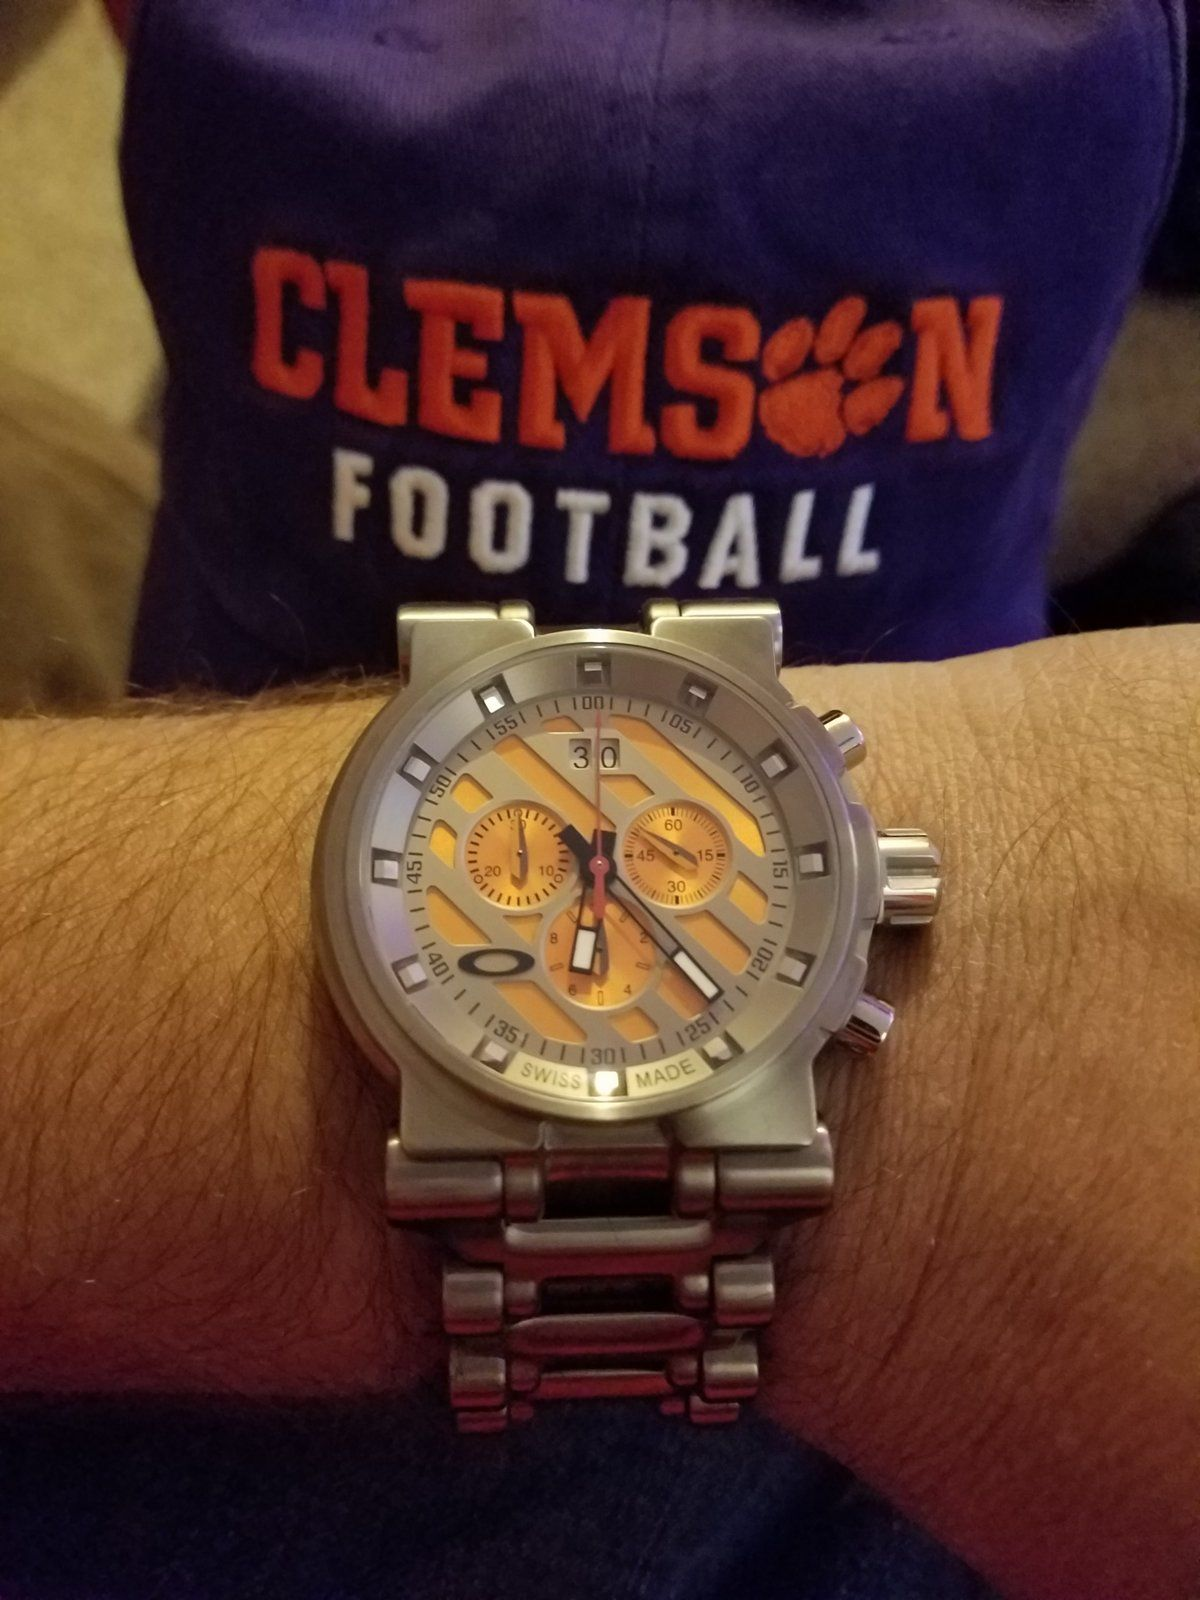 Rocking the holiday killswitch w/ crackle bezel for New Years - 1483226457922-1665012382.jpg